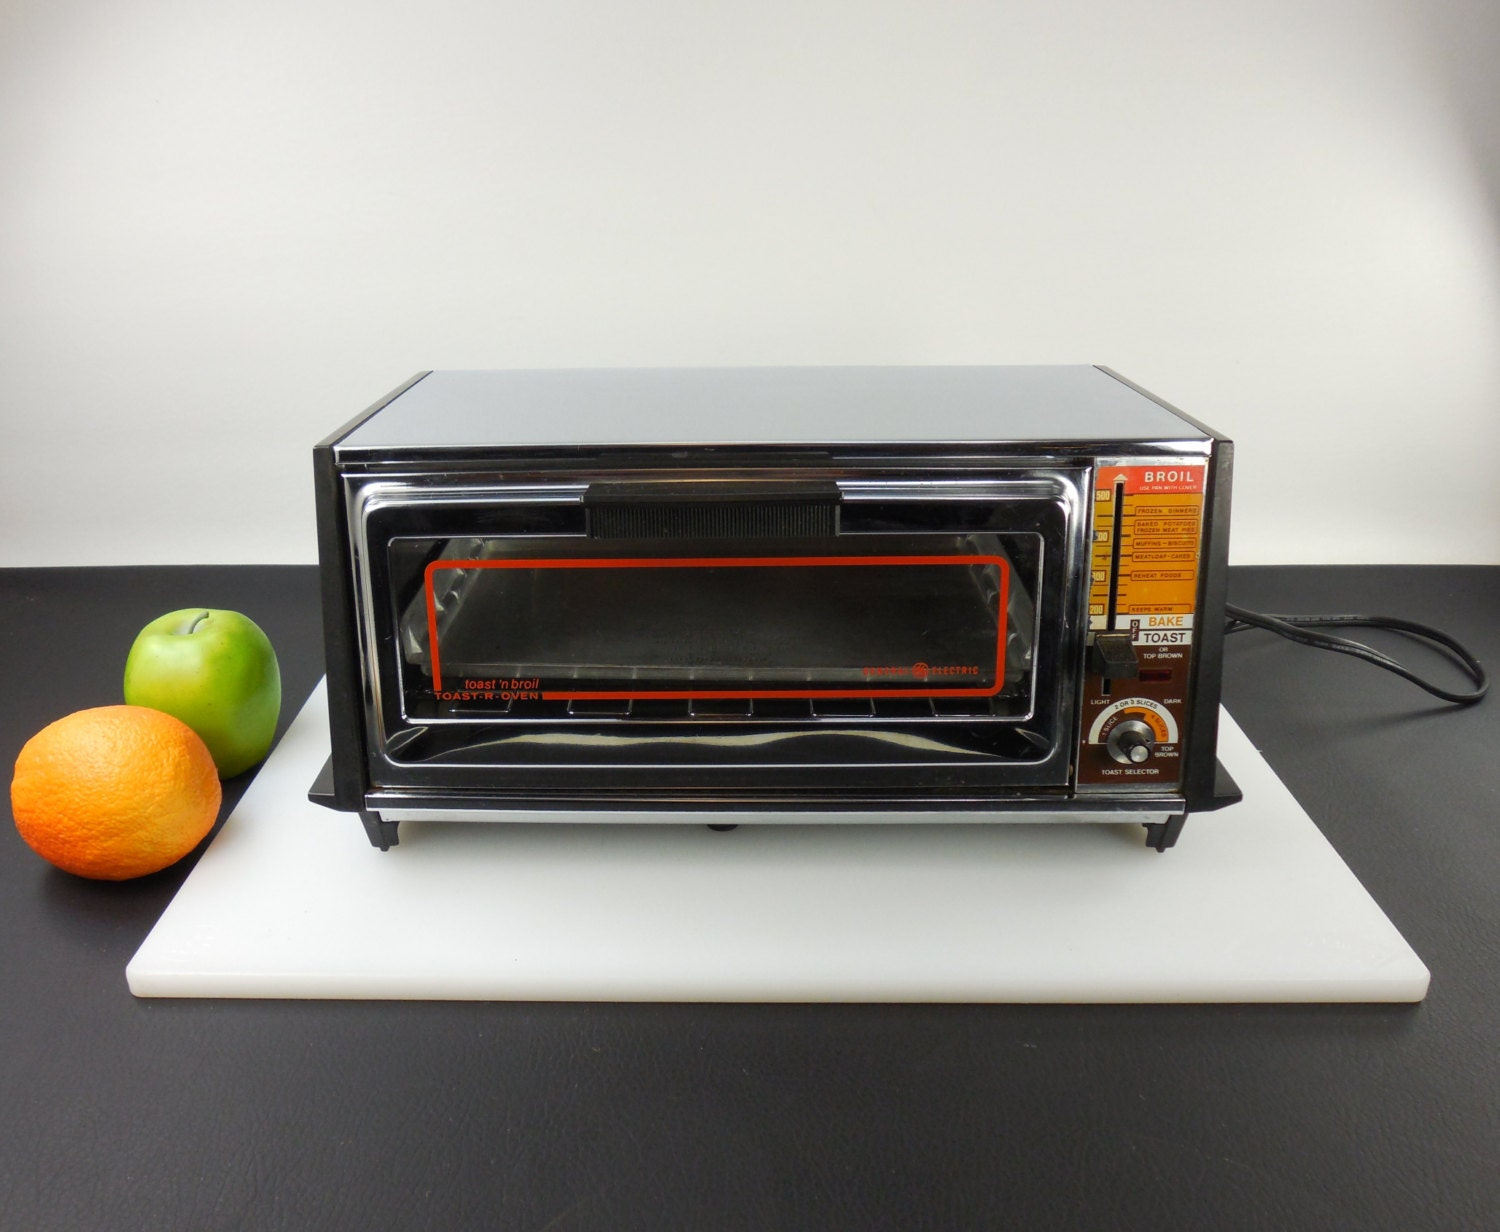 General Electric Toaster Oven ~ S ge general electric toast r oven n broil